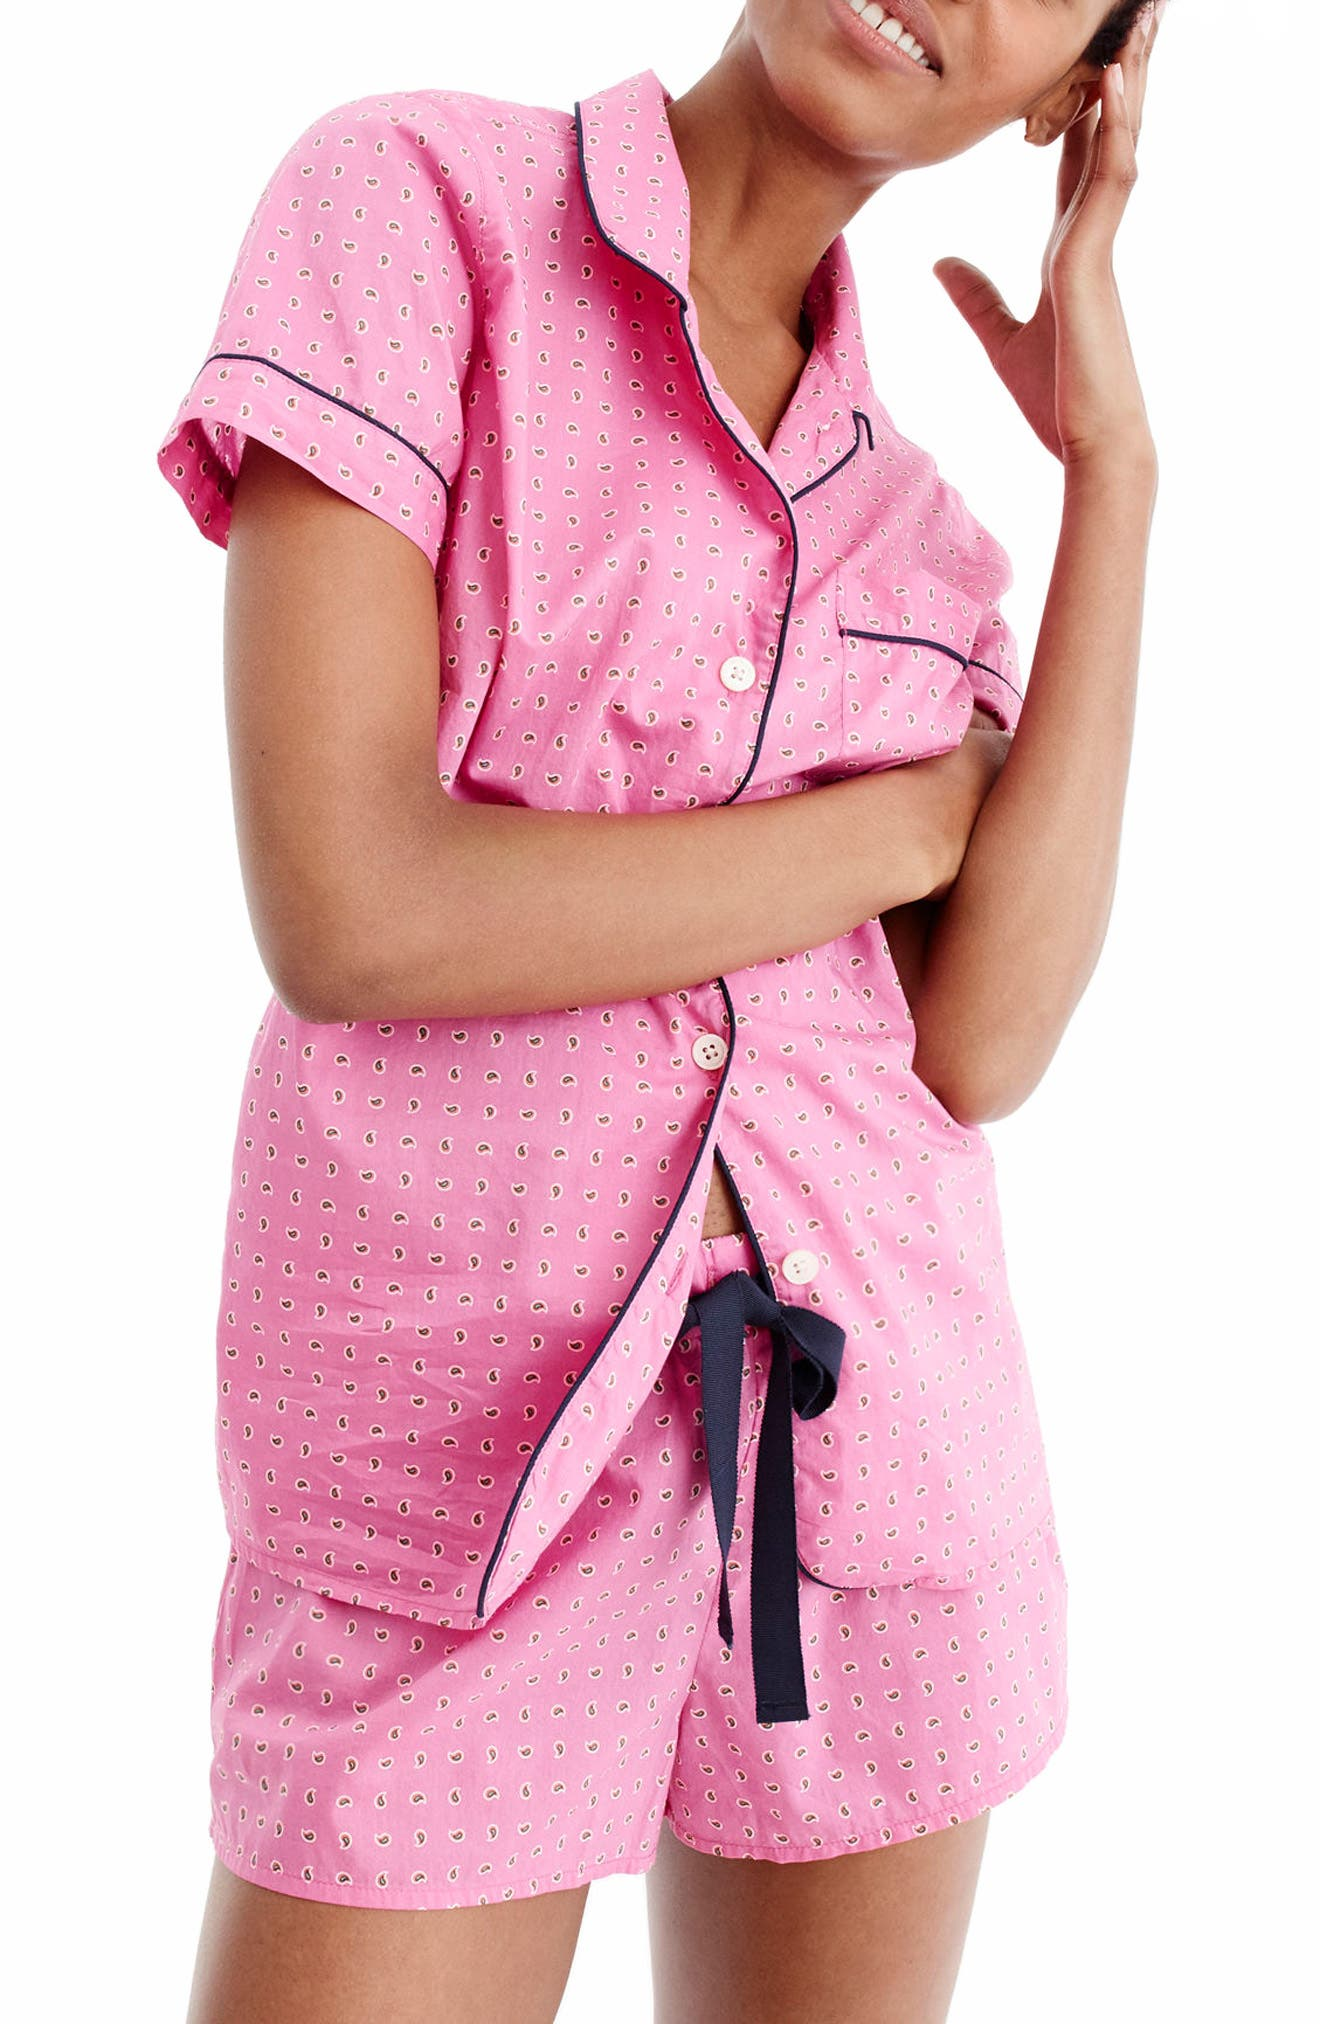 J.Crew Short Cotton Pajamas,                         Main,                         color, Vivid Fuchsia